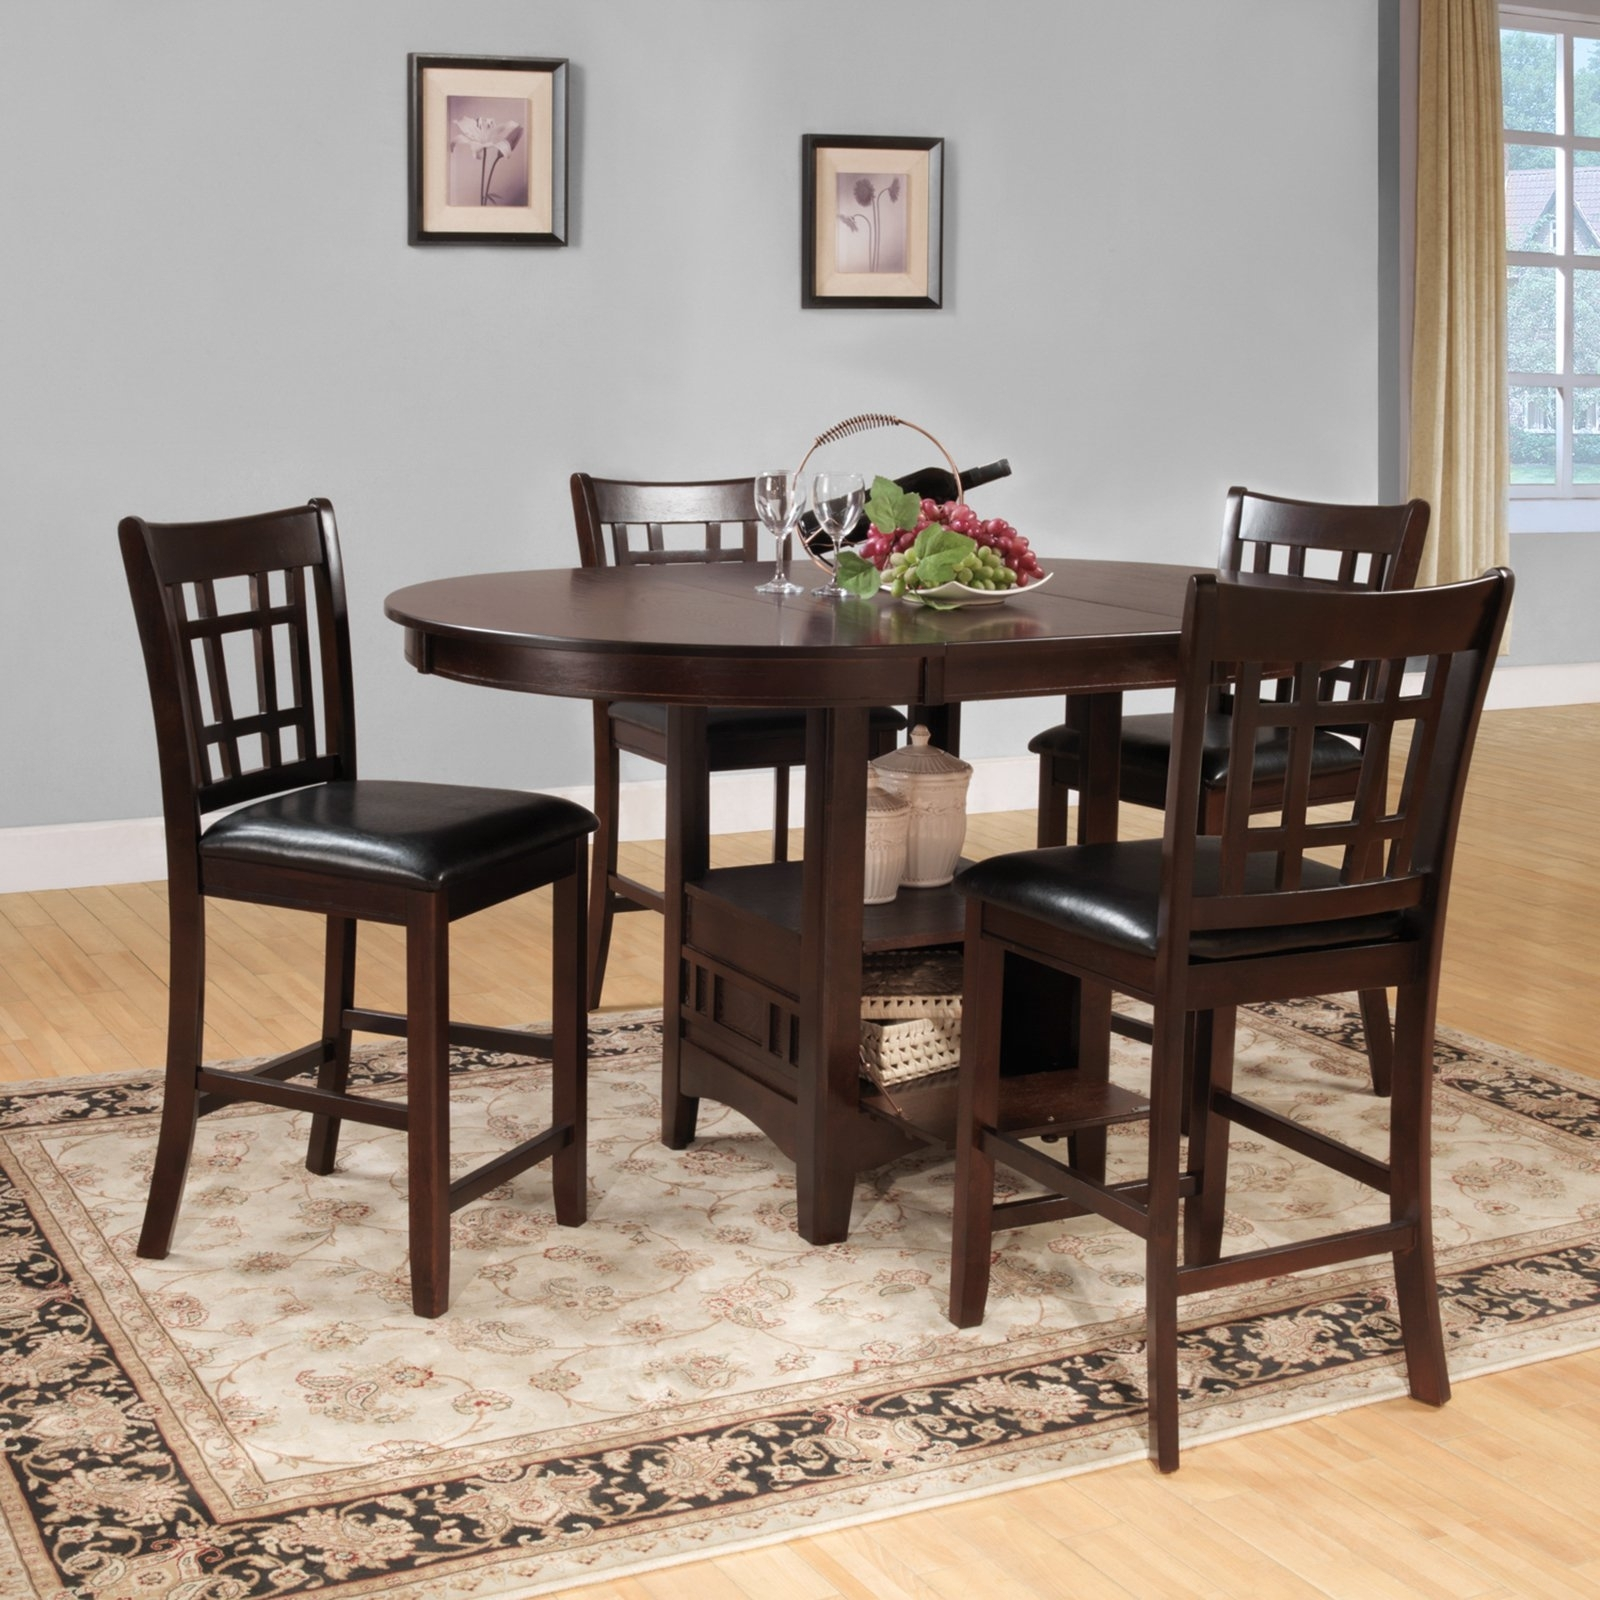 Weston Home Junipero 5 Pc Counter Height Dining Set, Dark Cherry With Regard To Most Up To Date Harper 5 Piece Counter Sets (View 3 of 20)